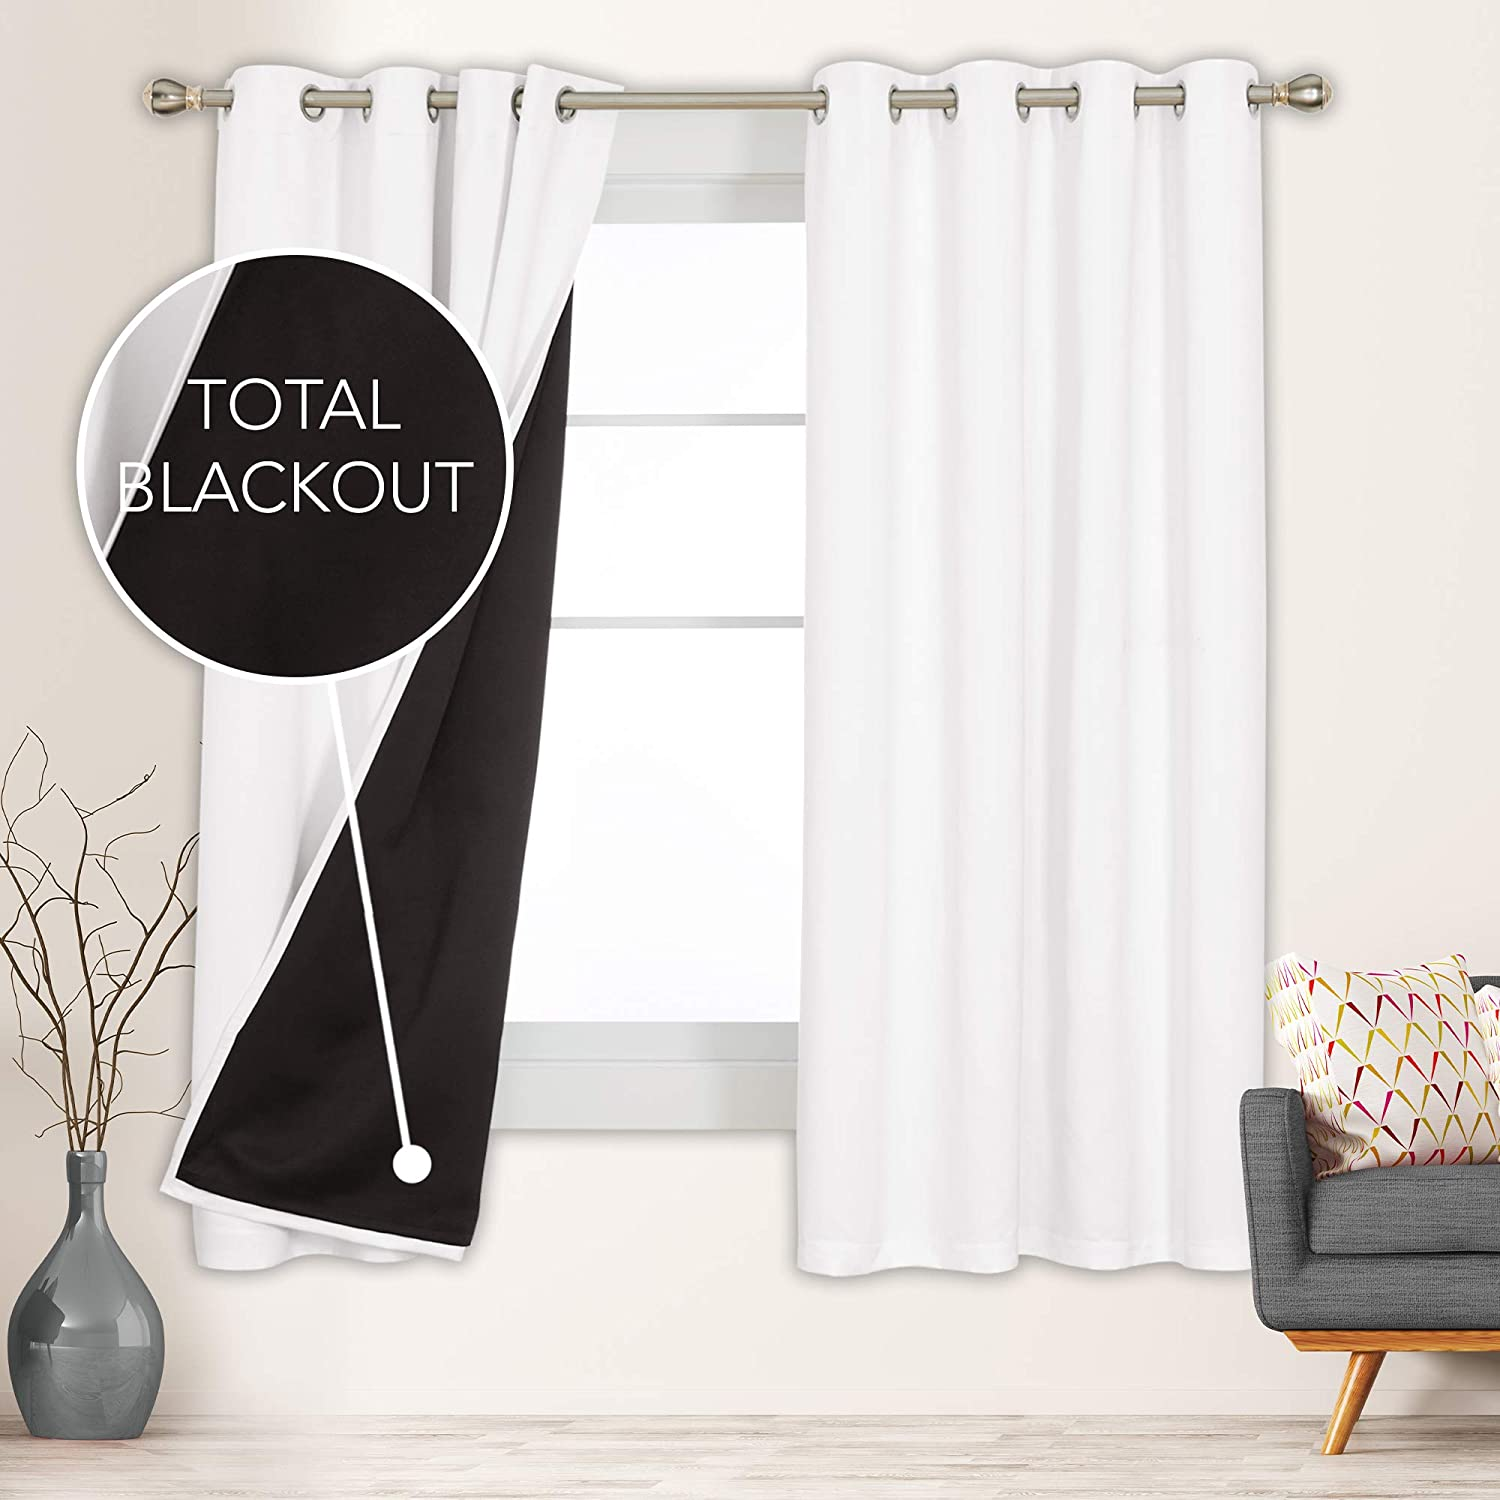 Deconovo Total Blackout Curtains 100% Light Blocking Double Layer Grommet Window Drapes Thermal Insulated Noise Cancellation for Bedroom Adult Kids Boy Girl Nursery, 1 Pair, 52x72 in, Pure White